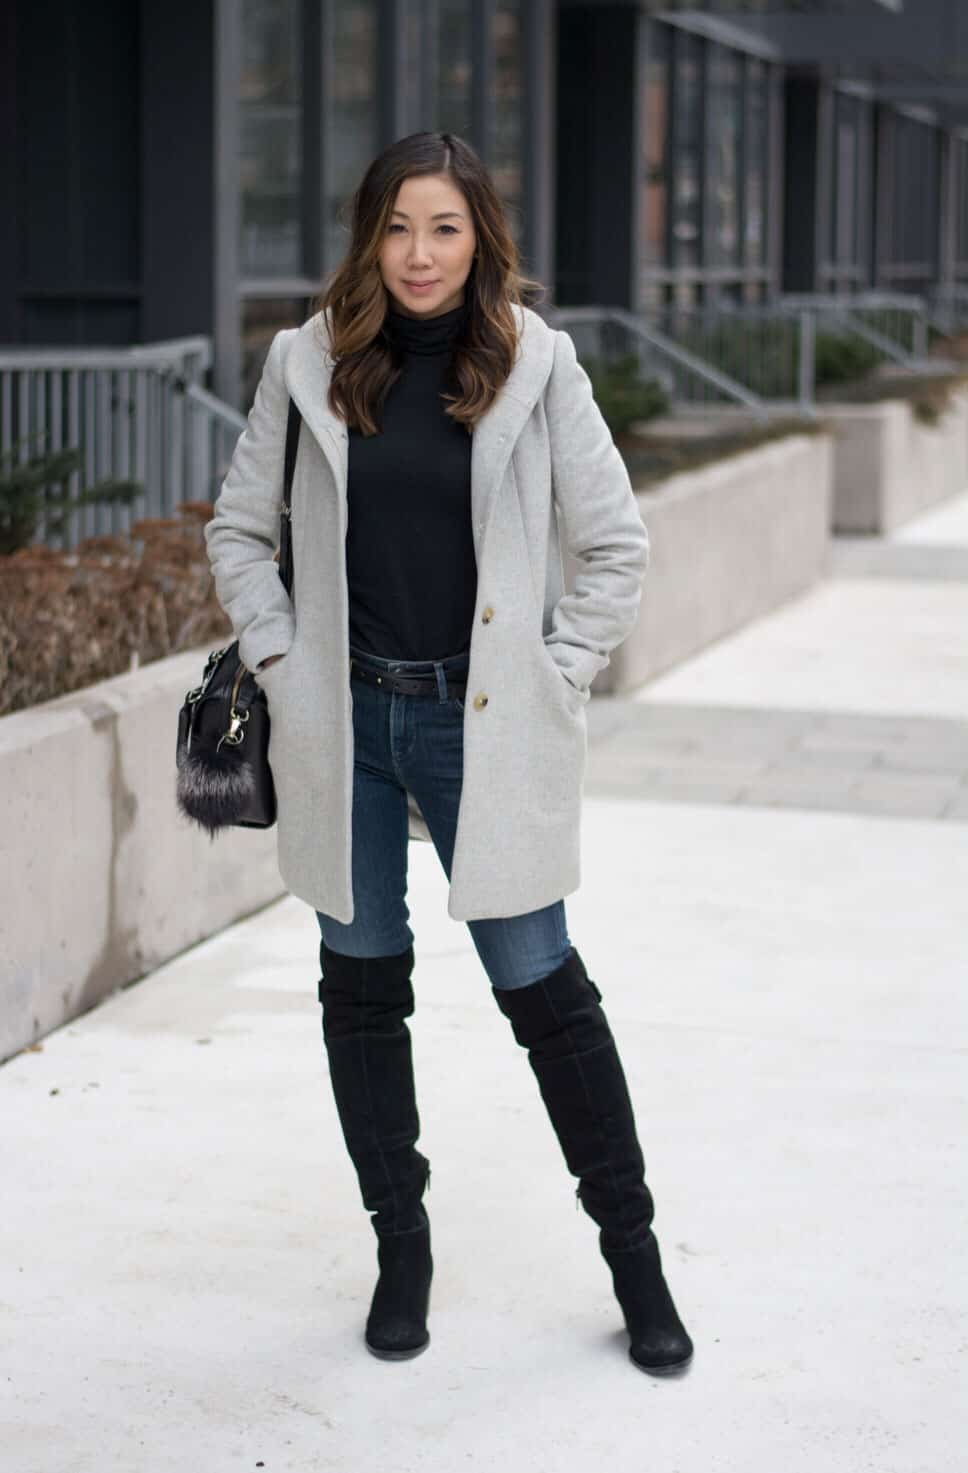 Fashion blogger streetstyle - weekend ootd